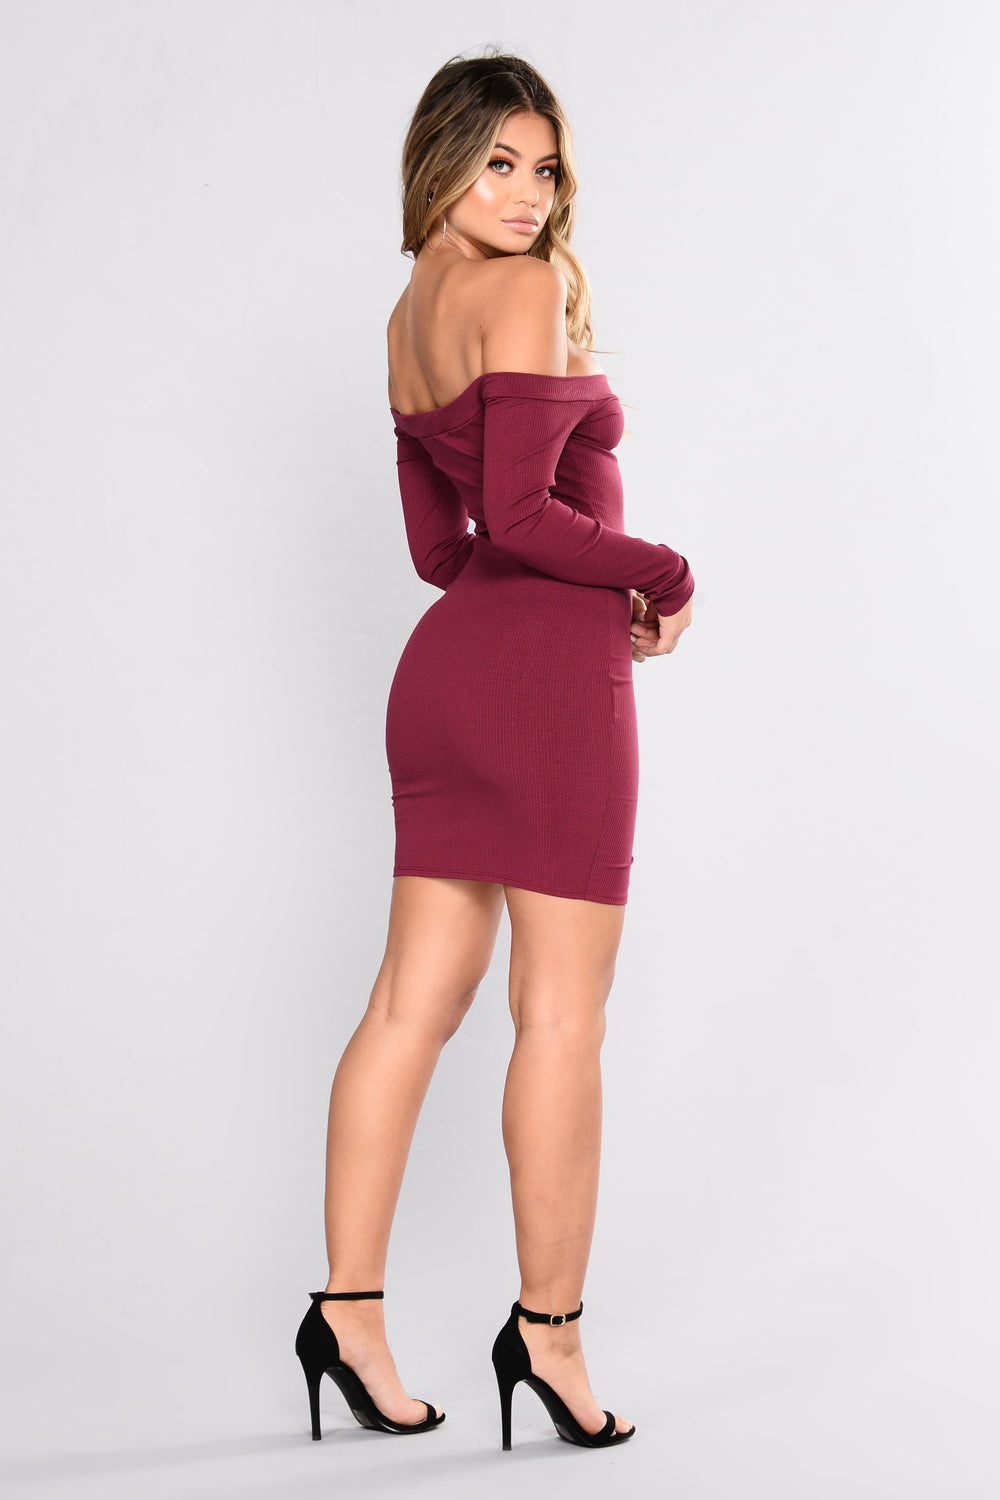 Fool In Love Off The Shoulder Dress - Wine